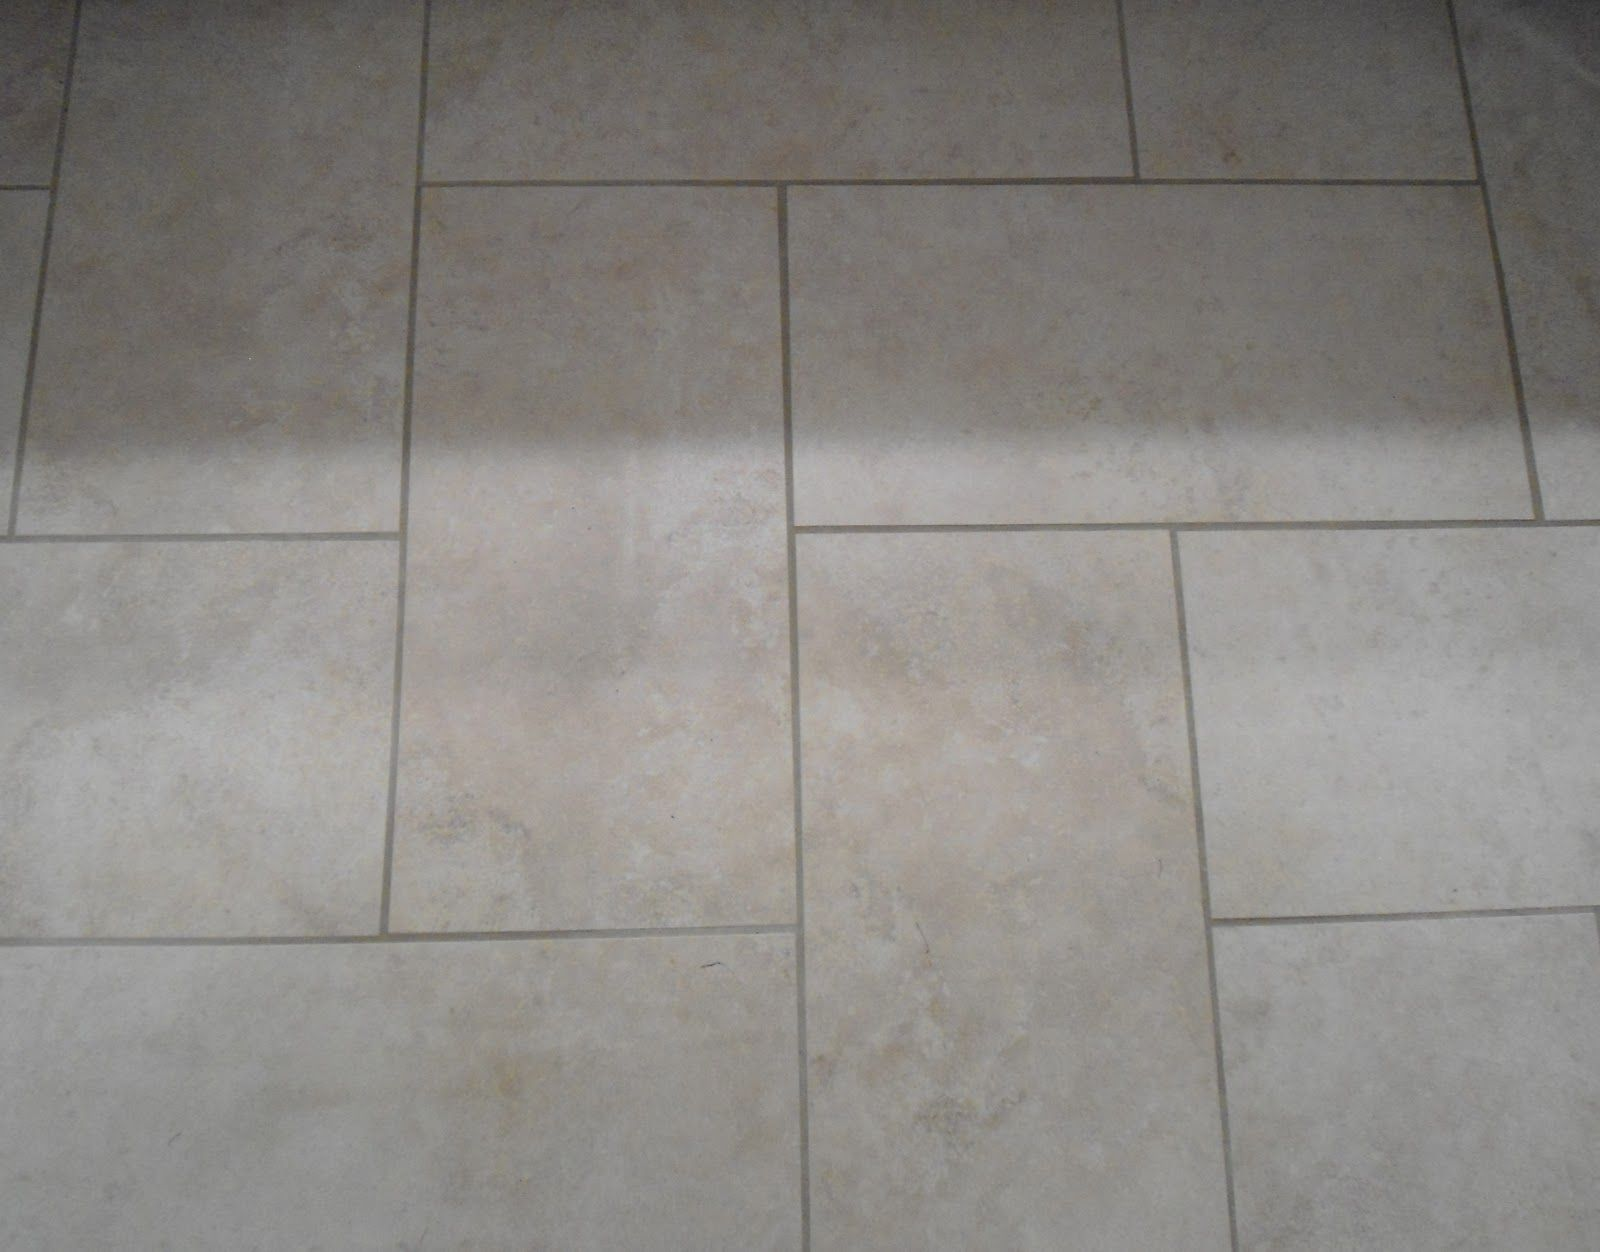 Laying Kitchen Floor Tiles 25 Best Ideas About 12x24 Tile On Pinterest Porcelain Tile